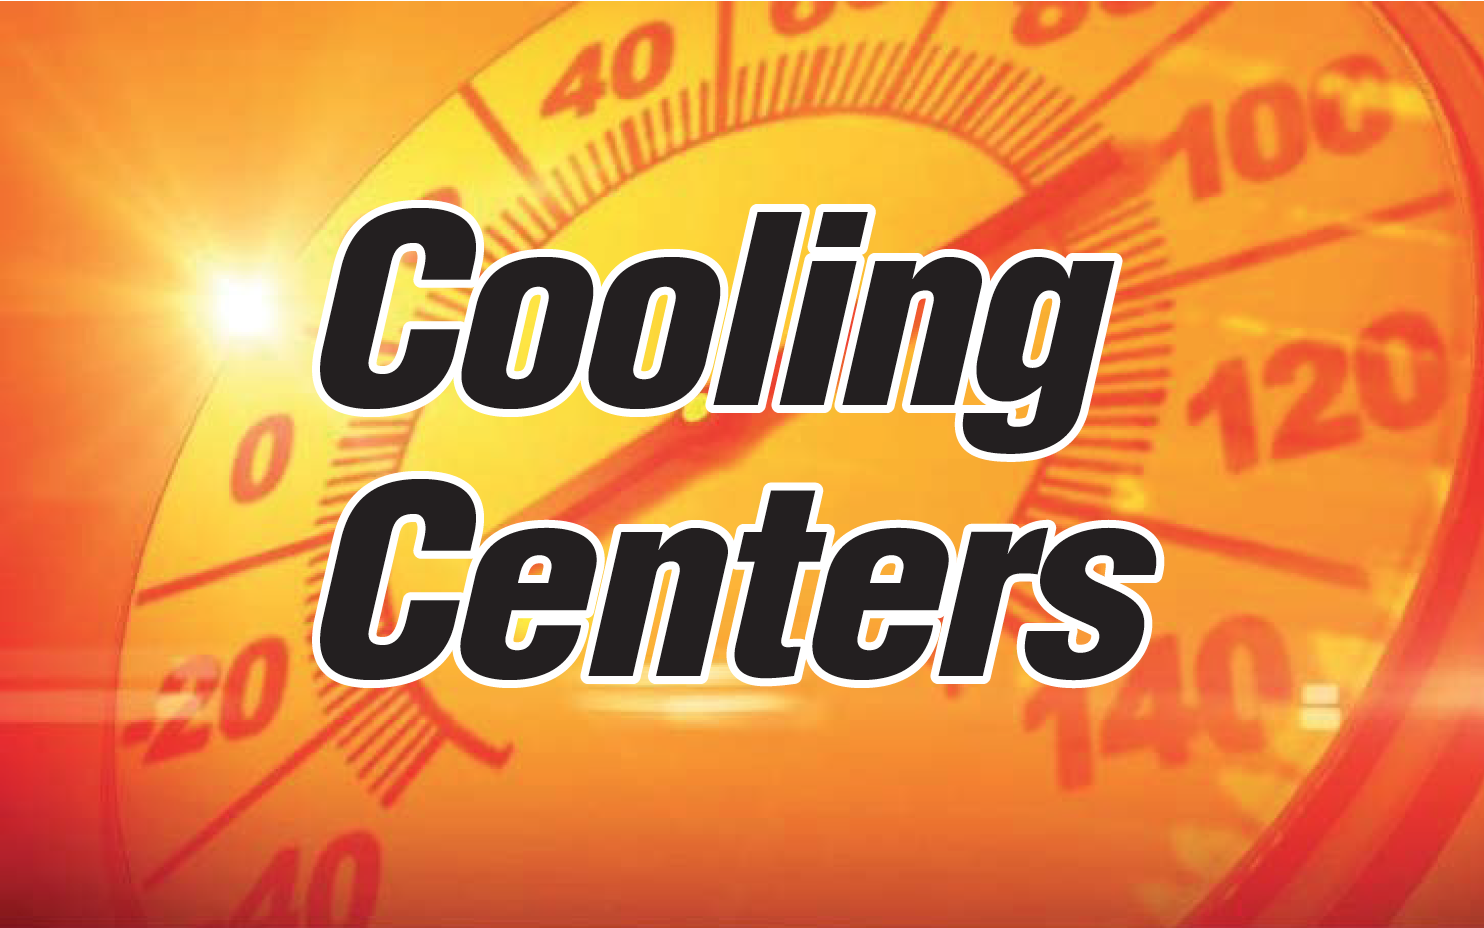 City opens cooling centers - Palo Alto Daily Post